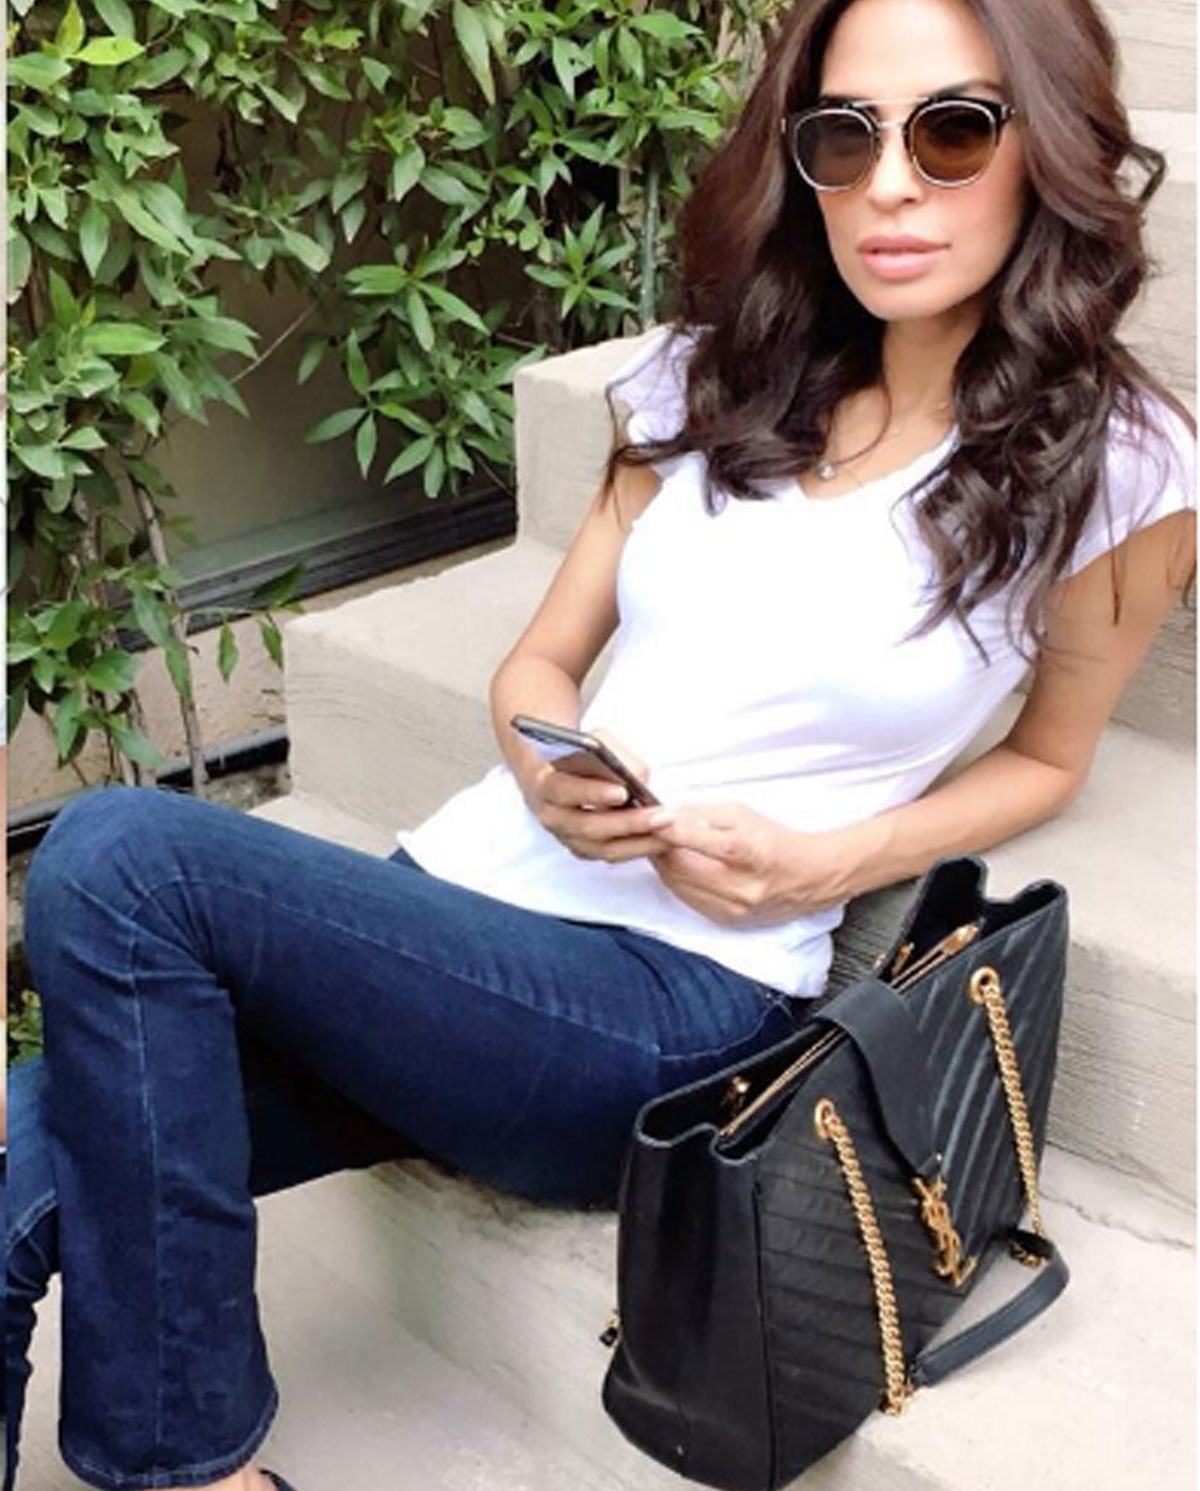 It's all about the bag and Fouzia Aman knows it.